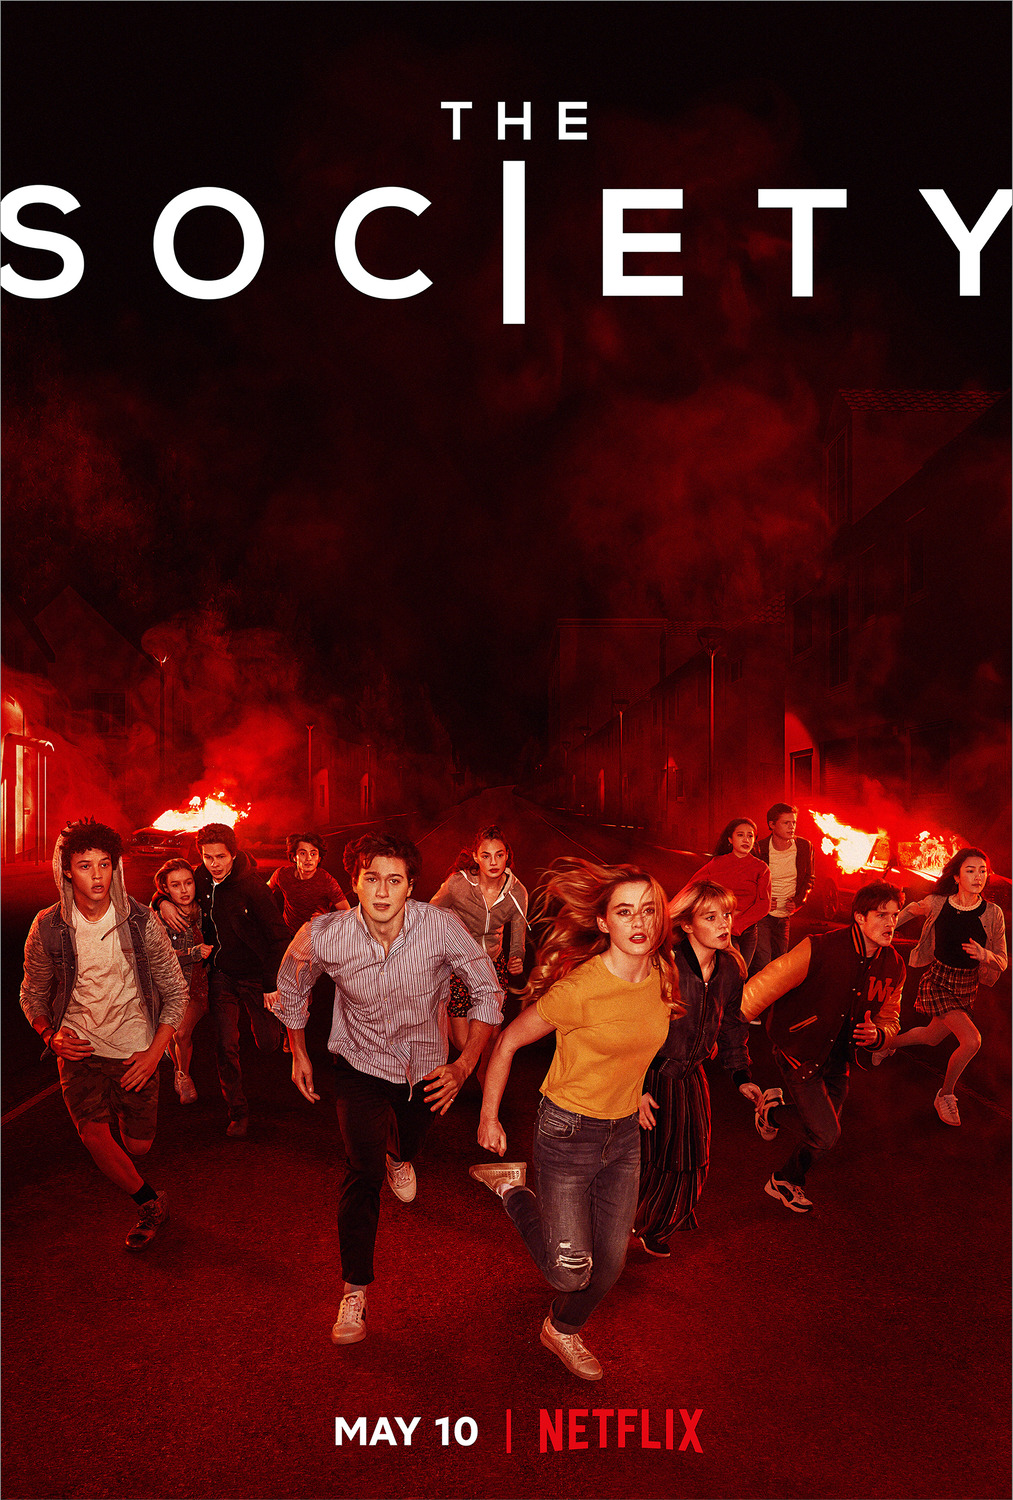 Netflix Review: Despite exciting moments, 'The Society